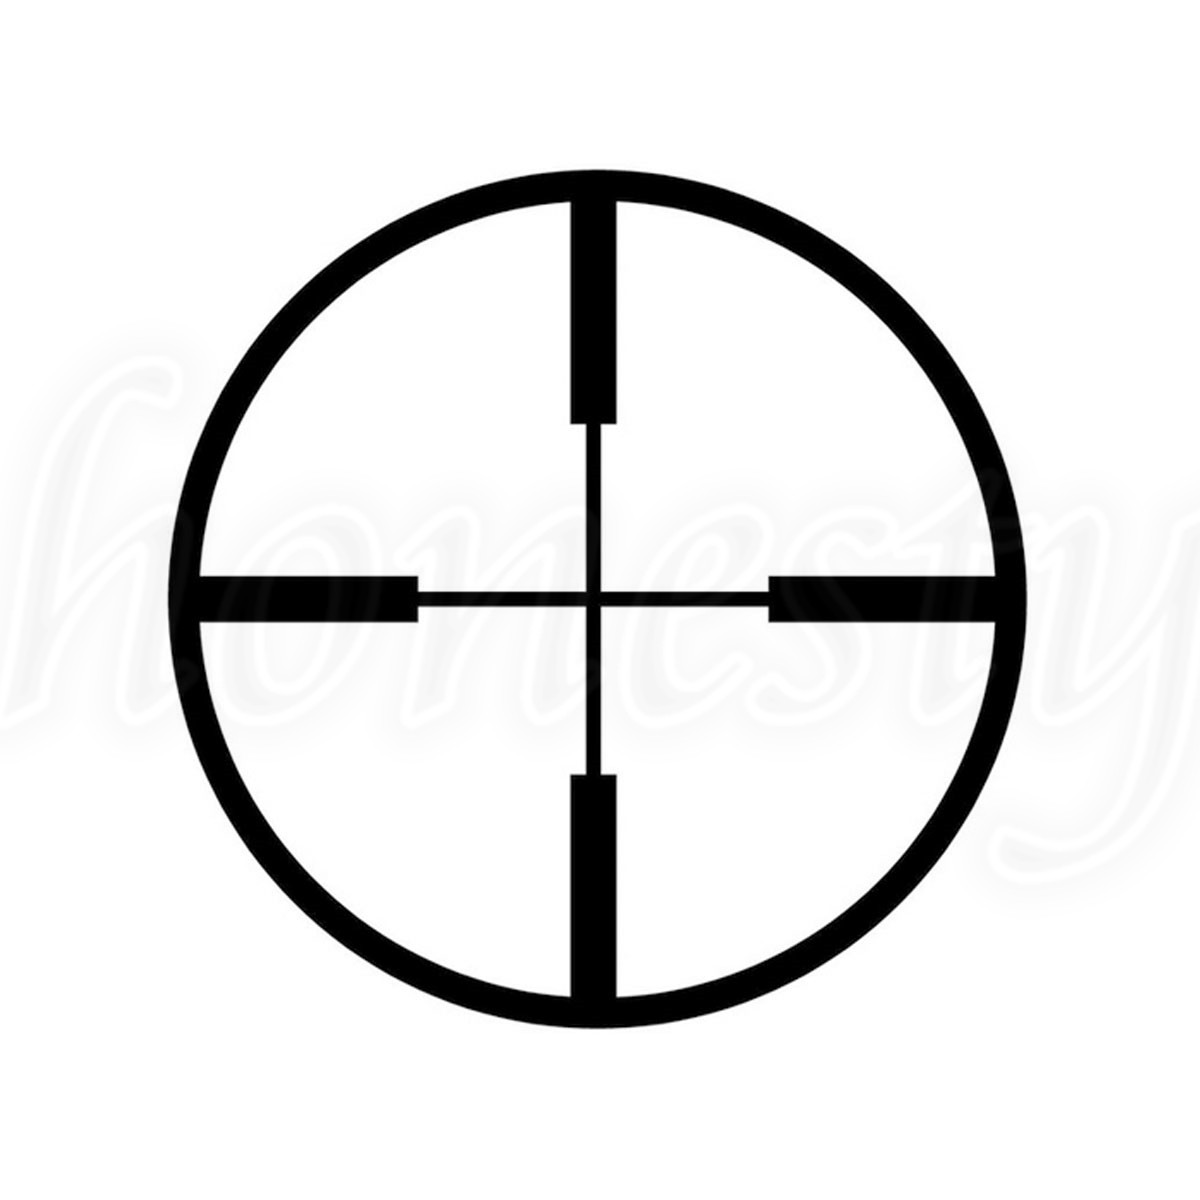 Shooting Font B Scope B Font Crosshairs Laptop Window Glass Truck Decor Car Font B Sticker